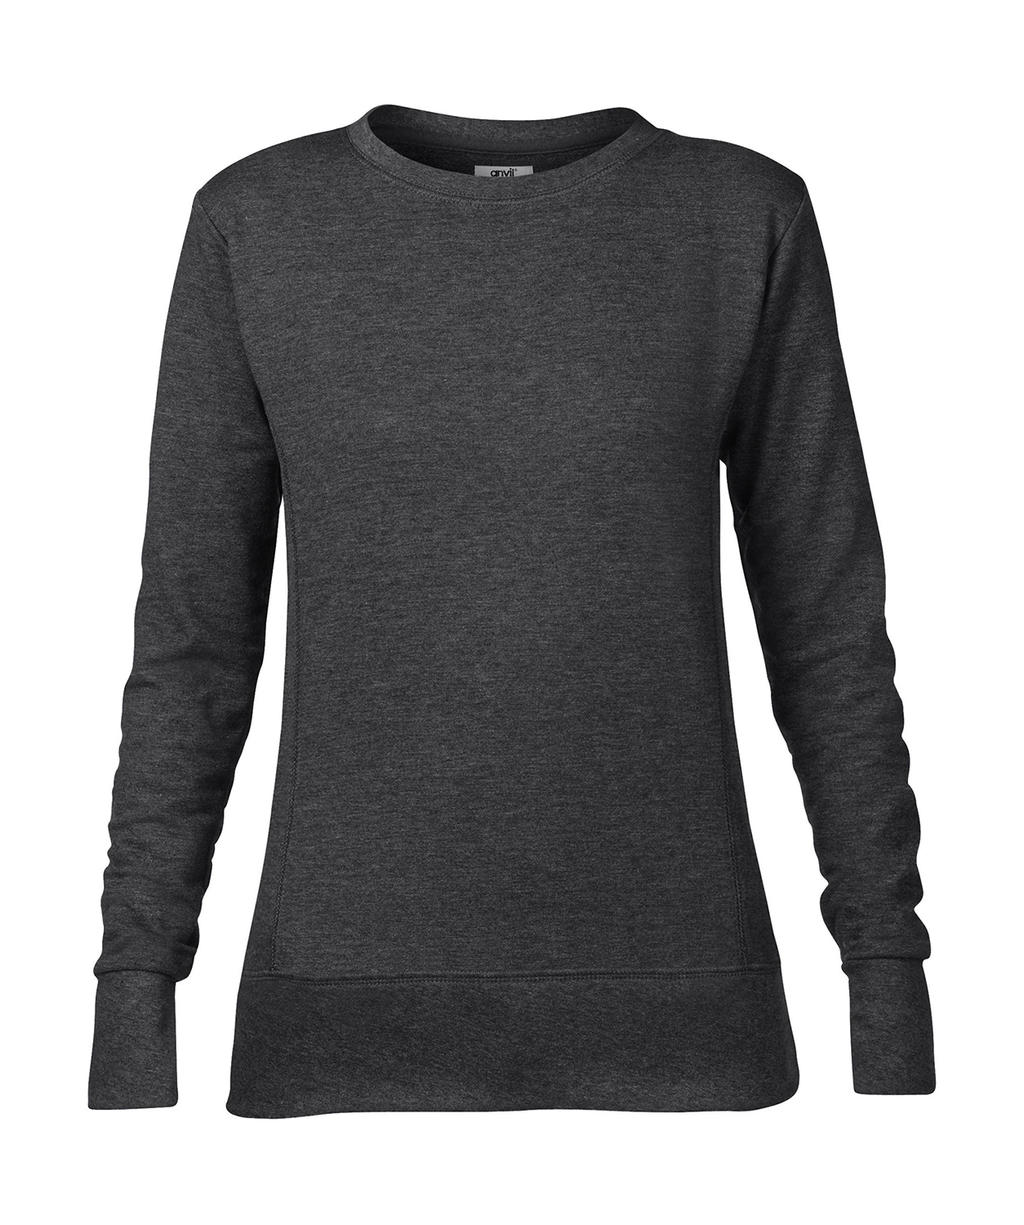 Anvil-Sweatshirt-Sweat-Shirt-Pullover-French-Terry-DAMEN-S-M-L-XL-XXL-NEU